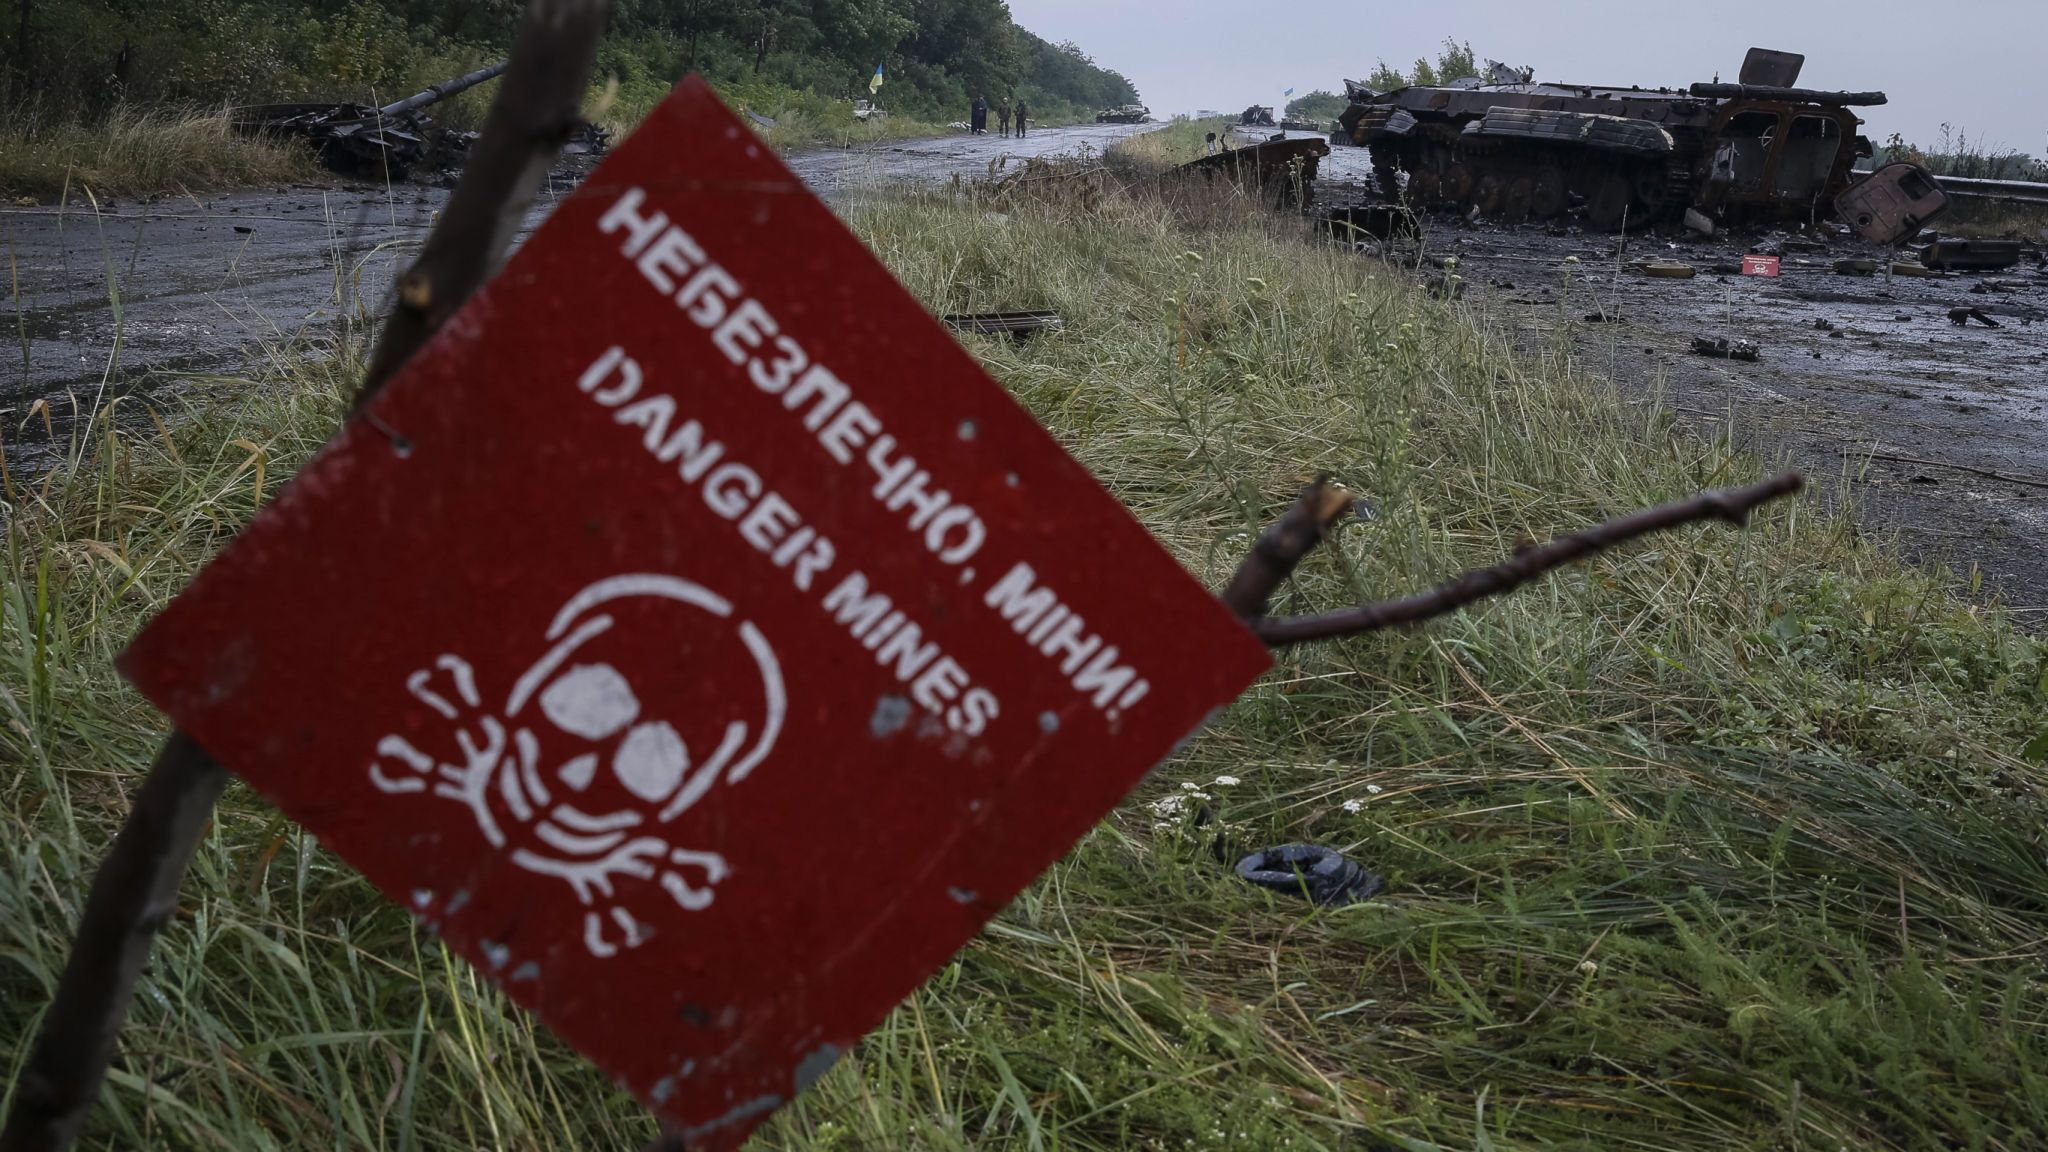 Landmine kills three boys playing in an 'abandoned house' in Ukraine